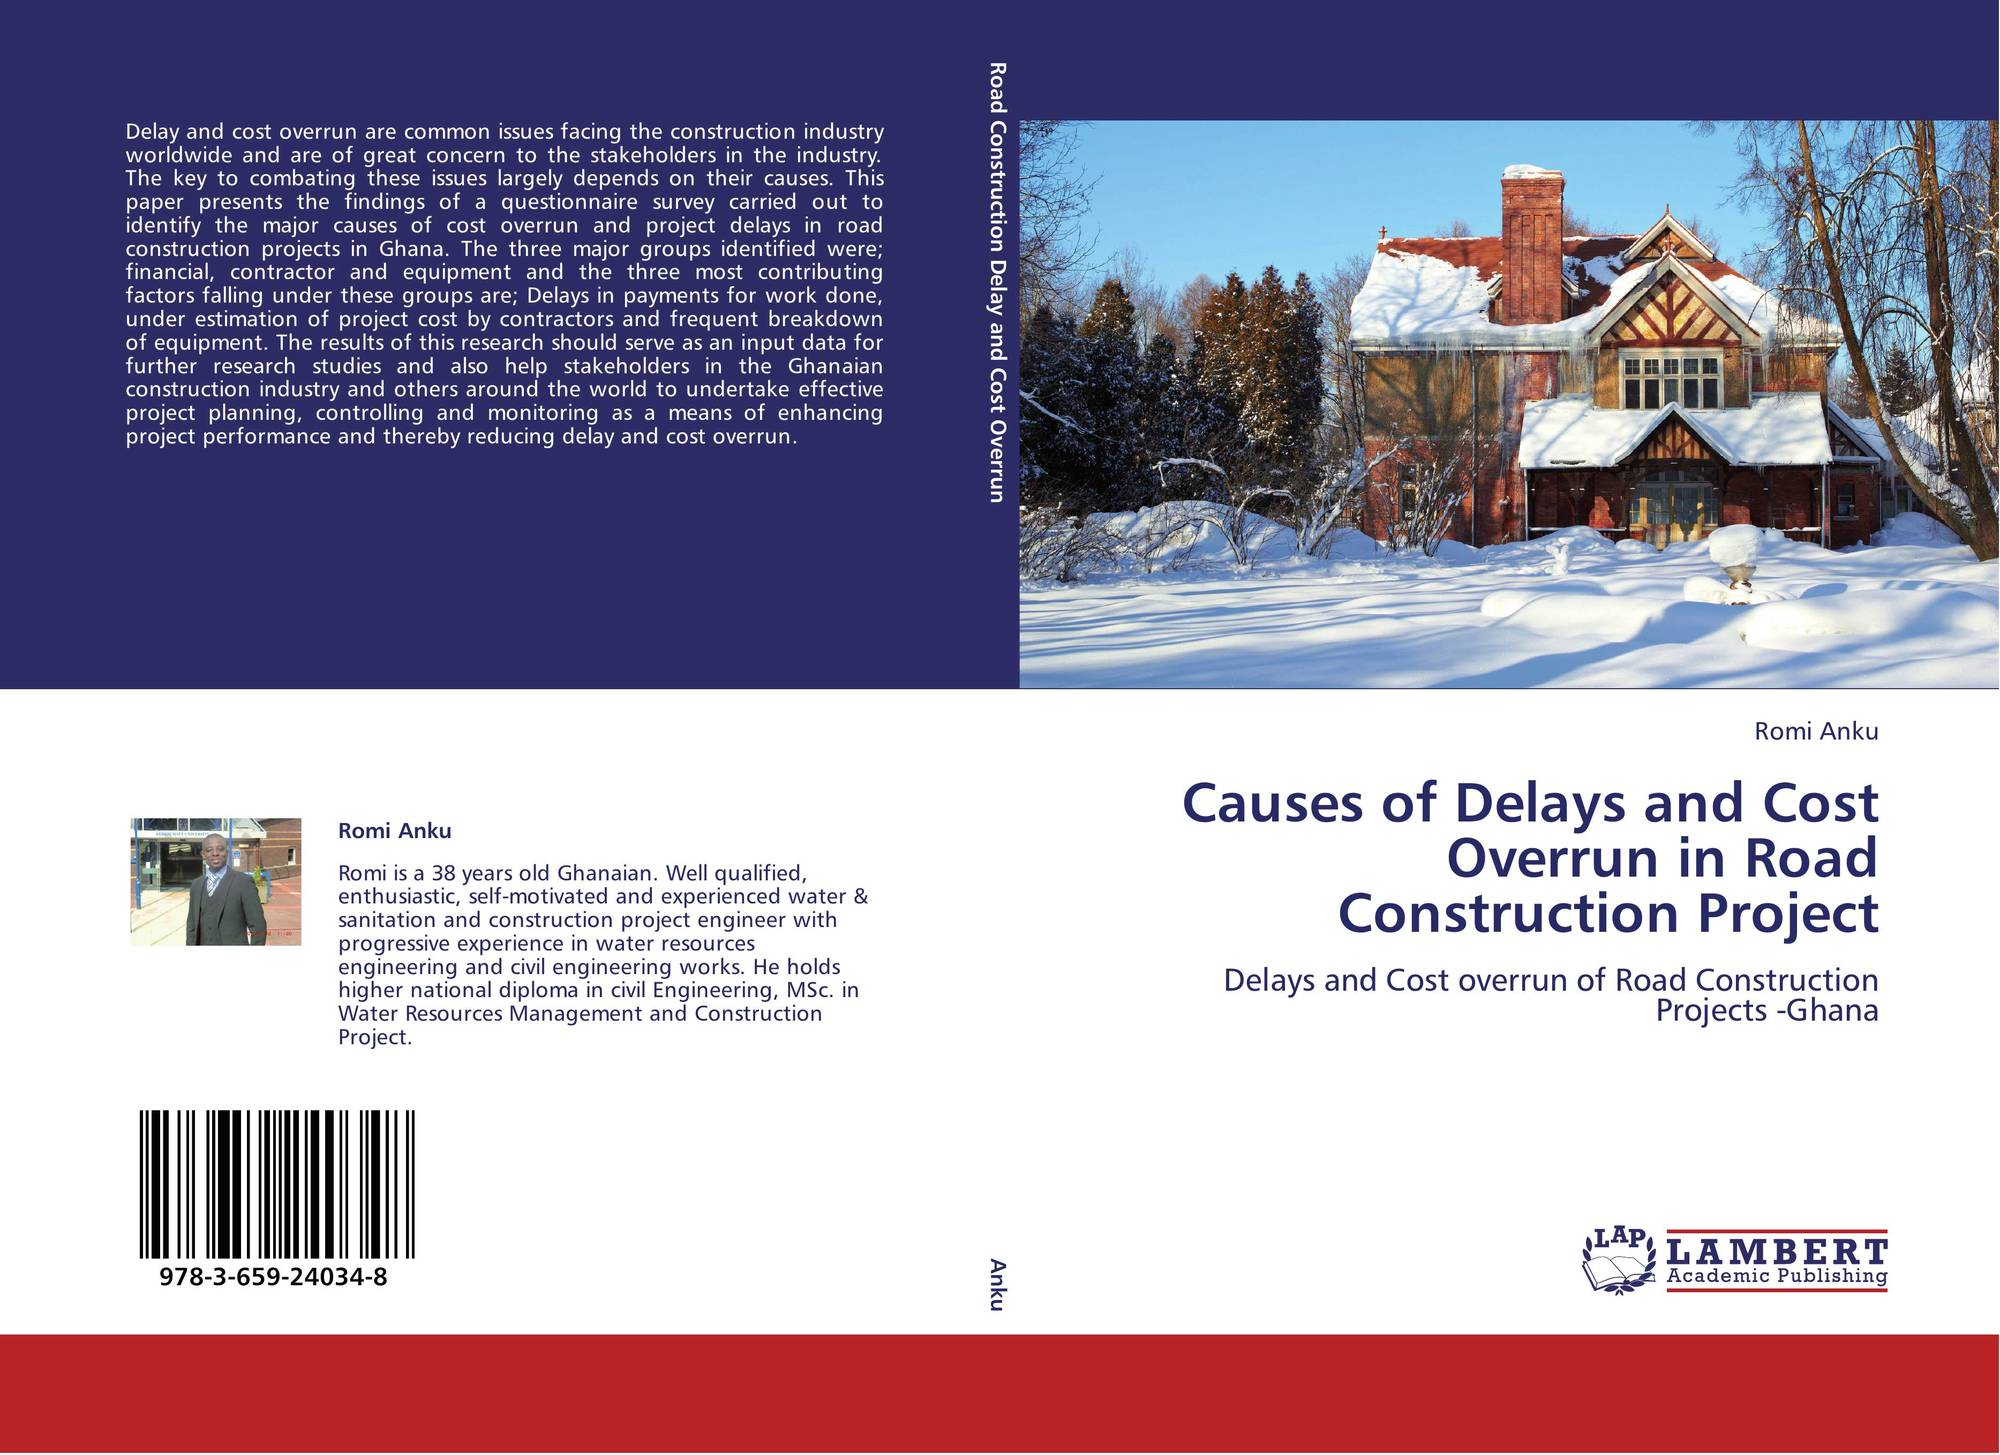 cost overrun in construction projects Res j appl sci eng technol, 5(8): 2621-2629, 2013 2622 found that monthly payments difficulties was the most important cost overruns factor as indicated by.